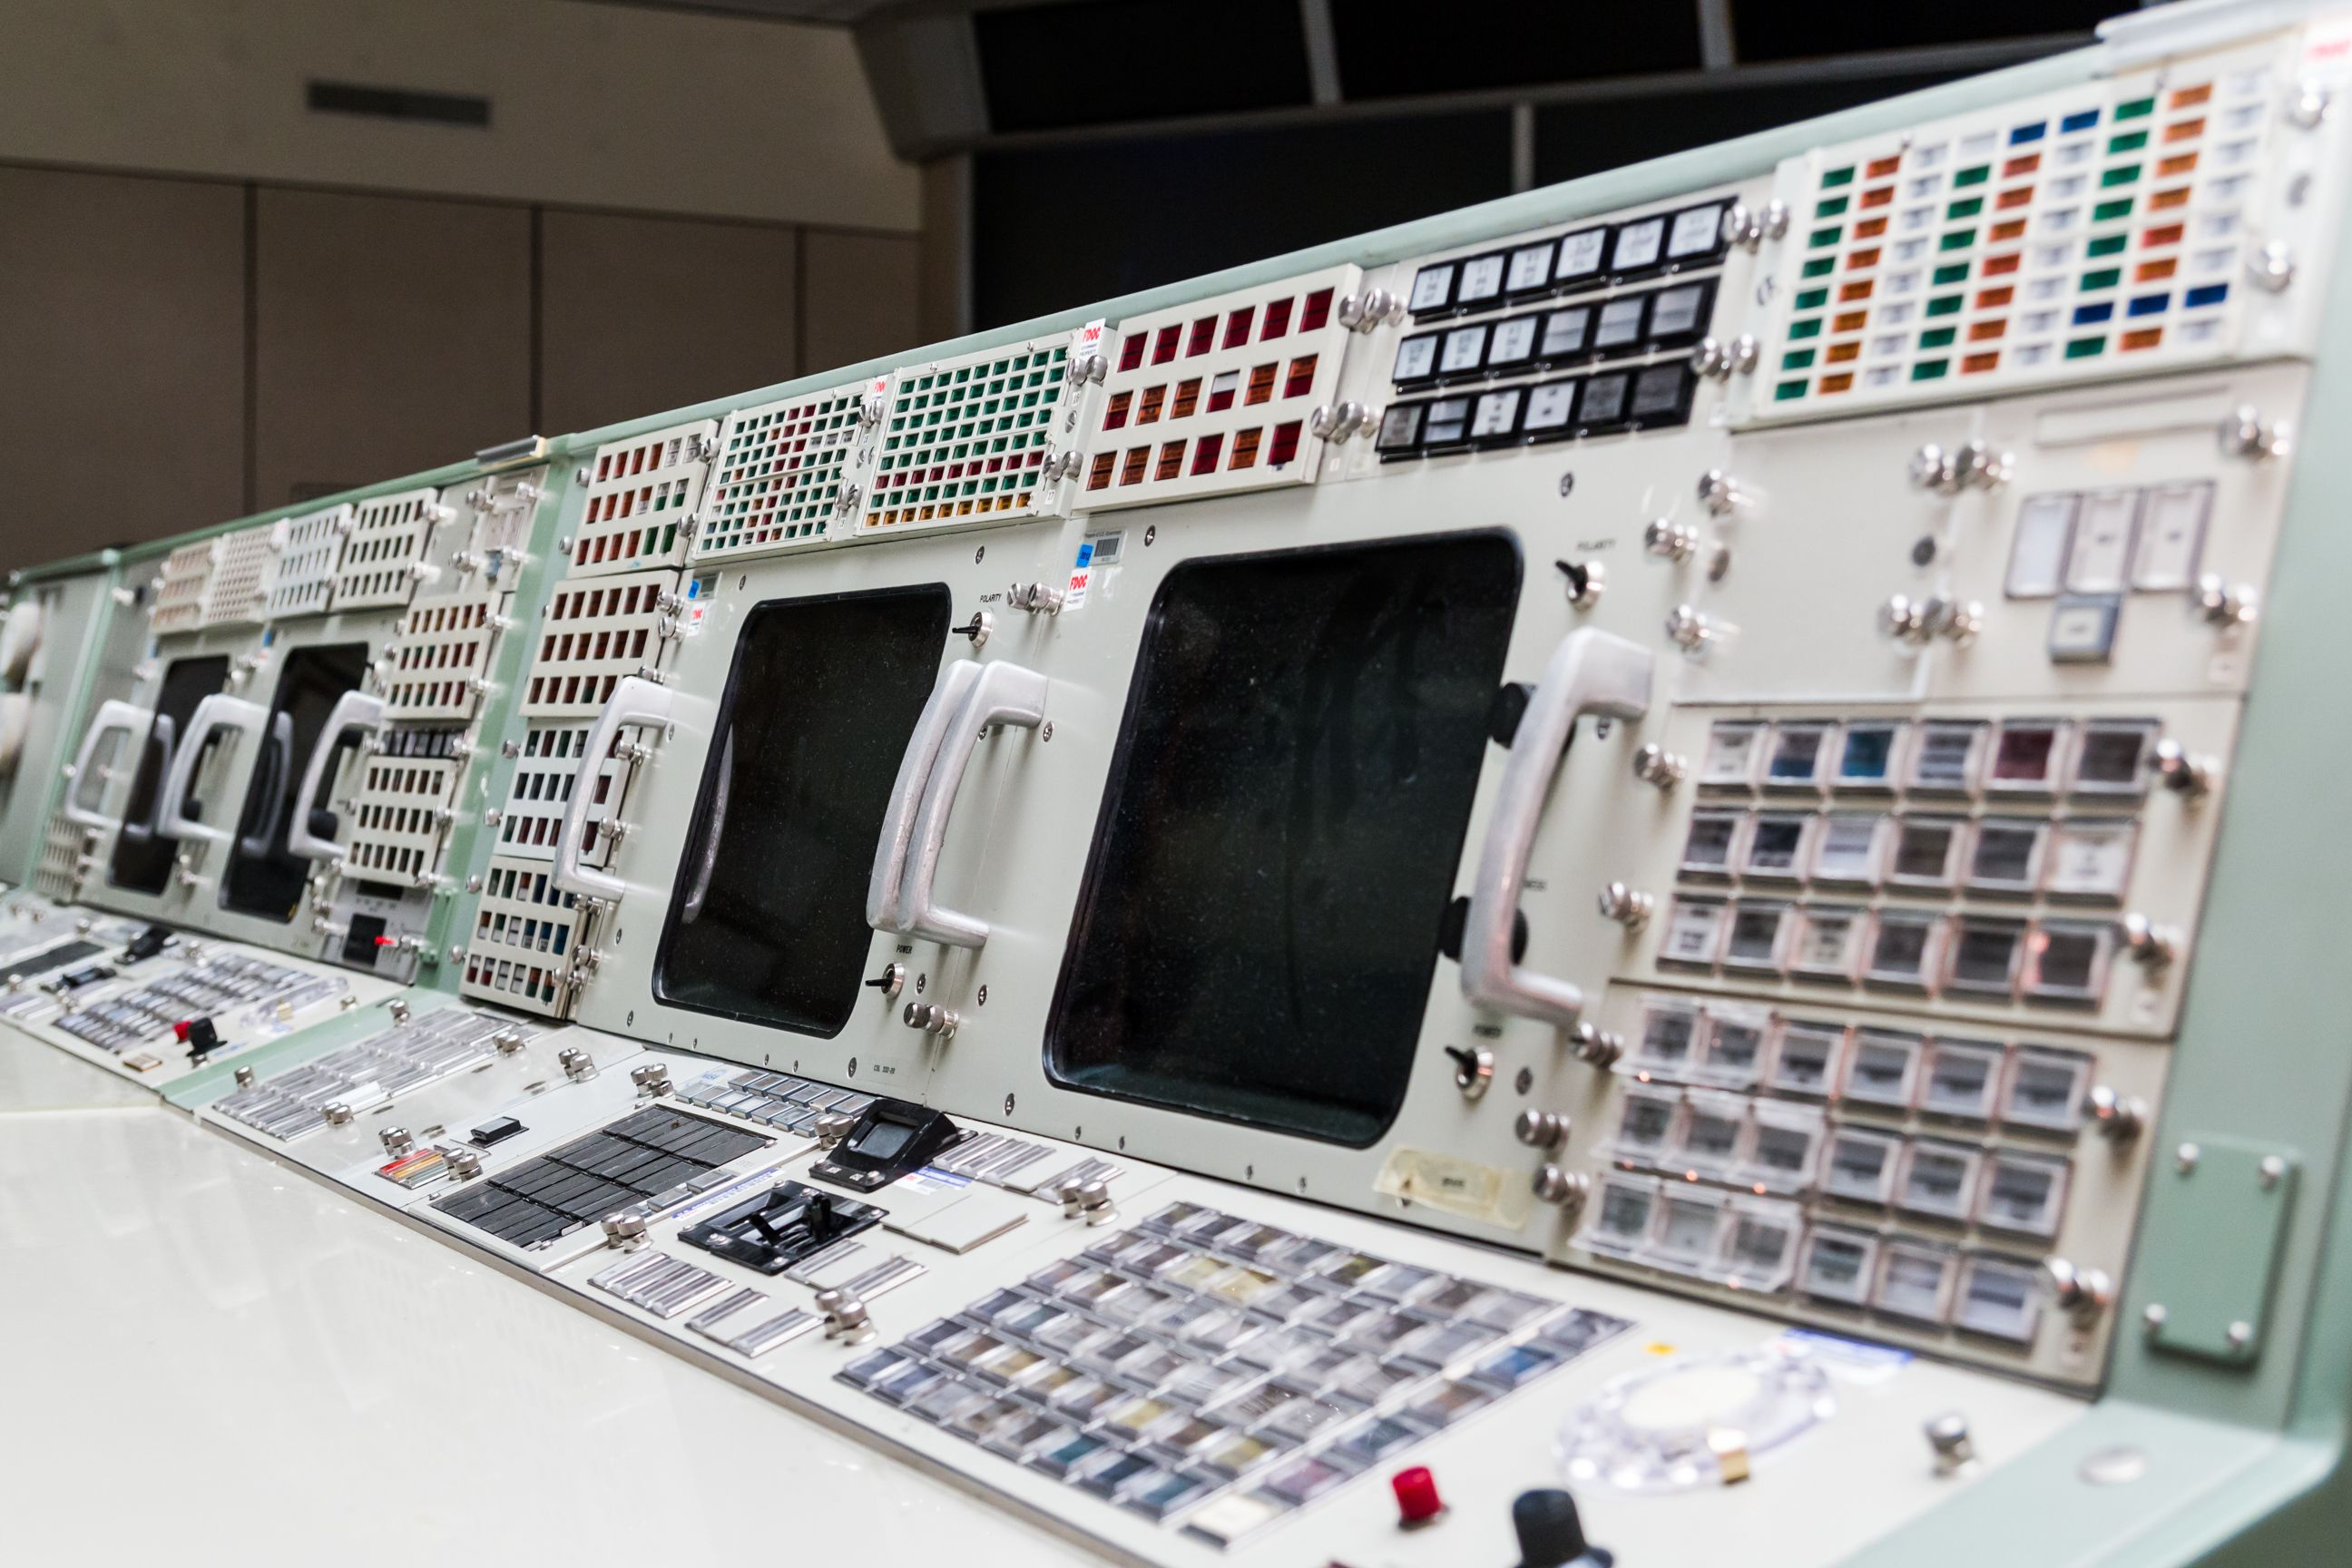 computers used in apollo space missions - photo #6